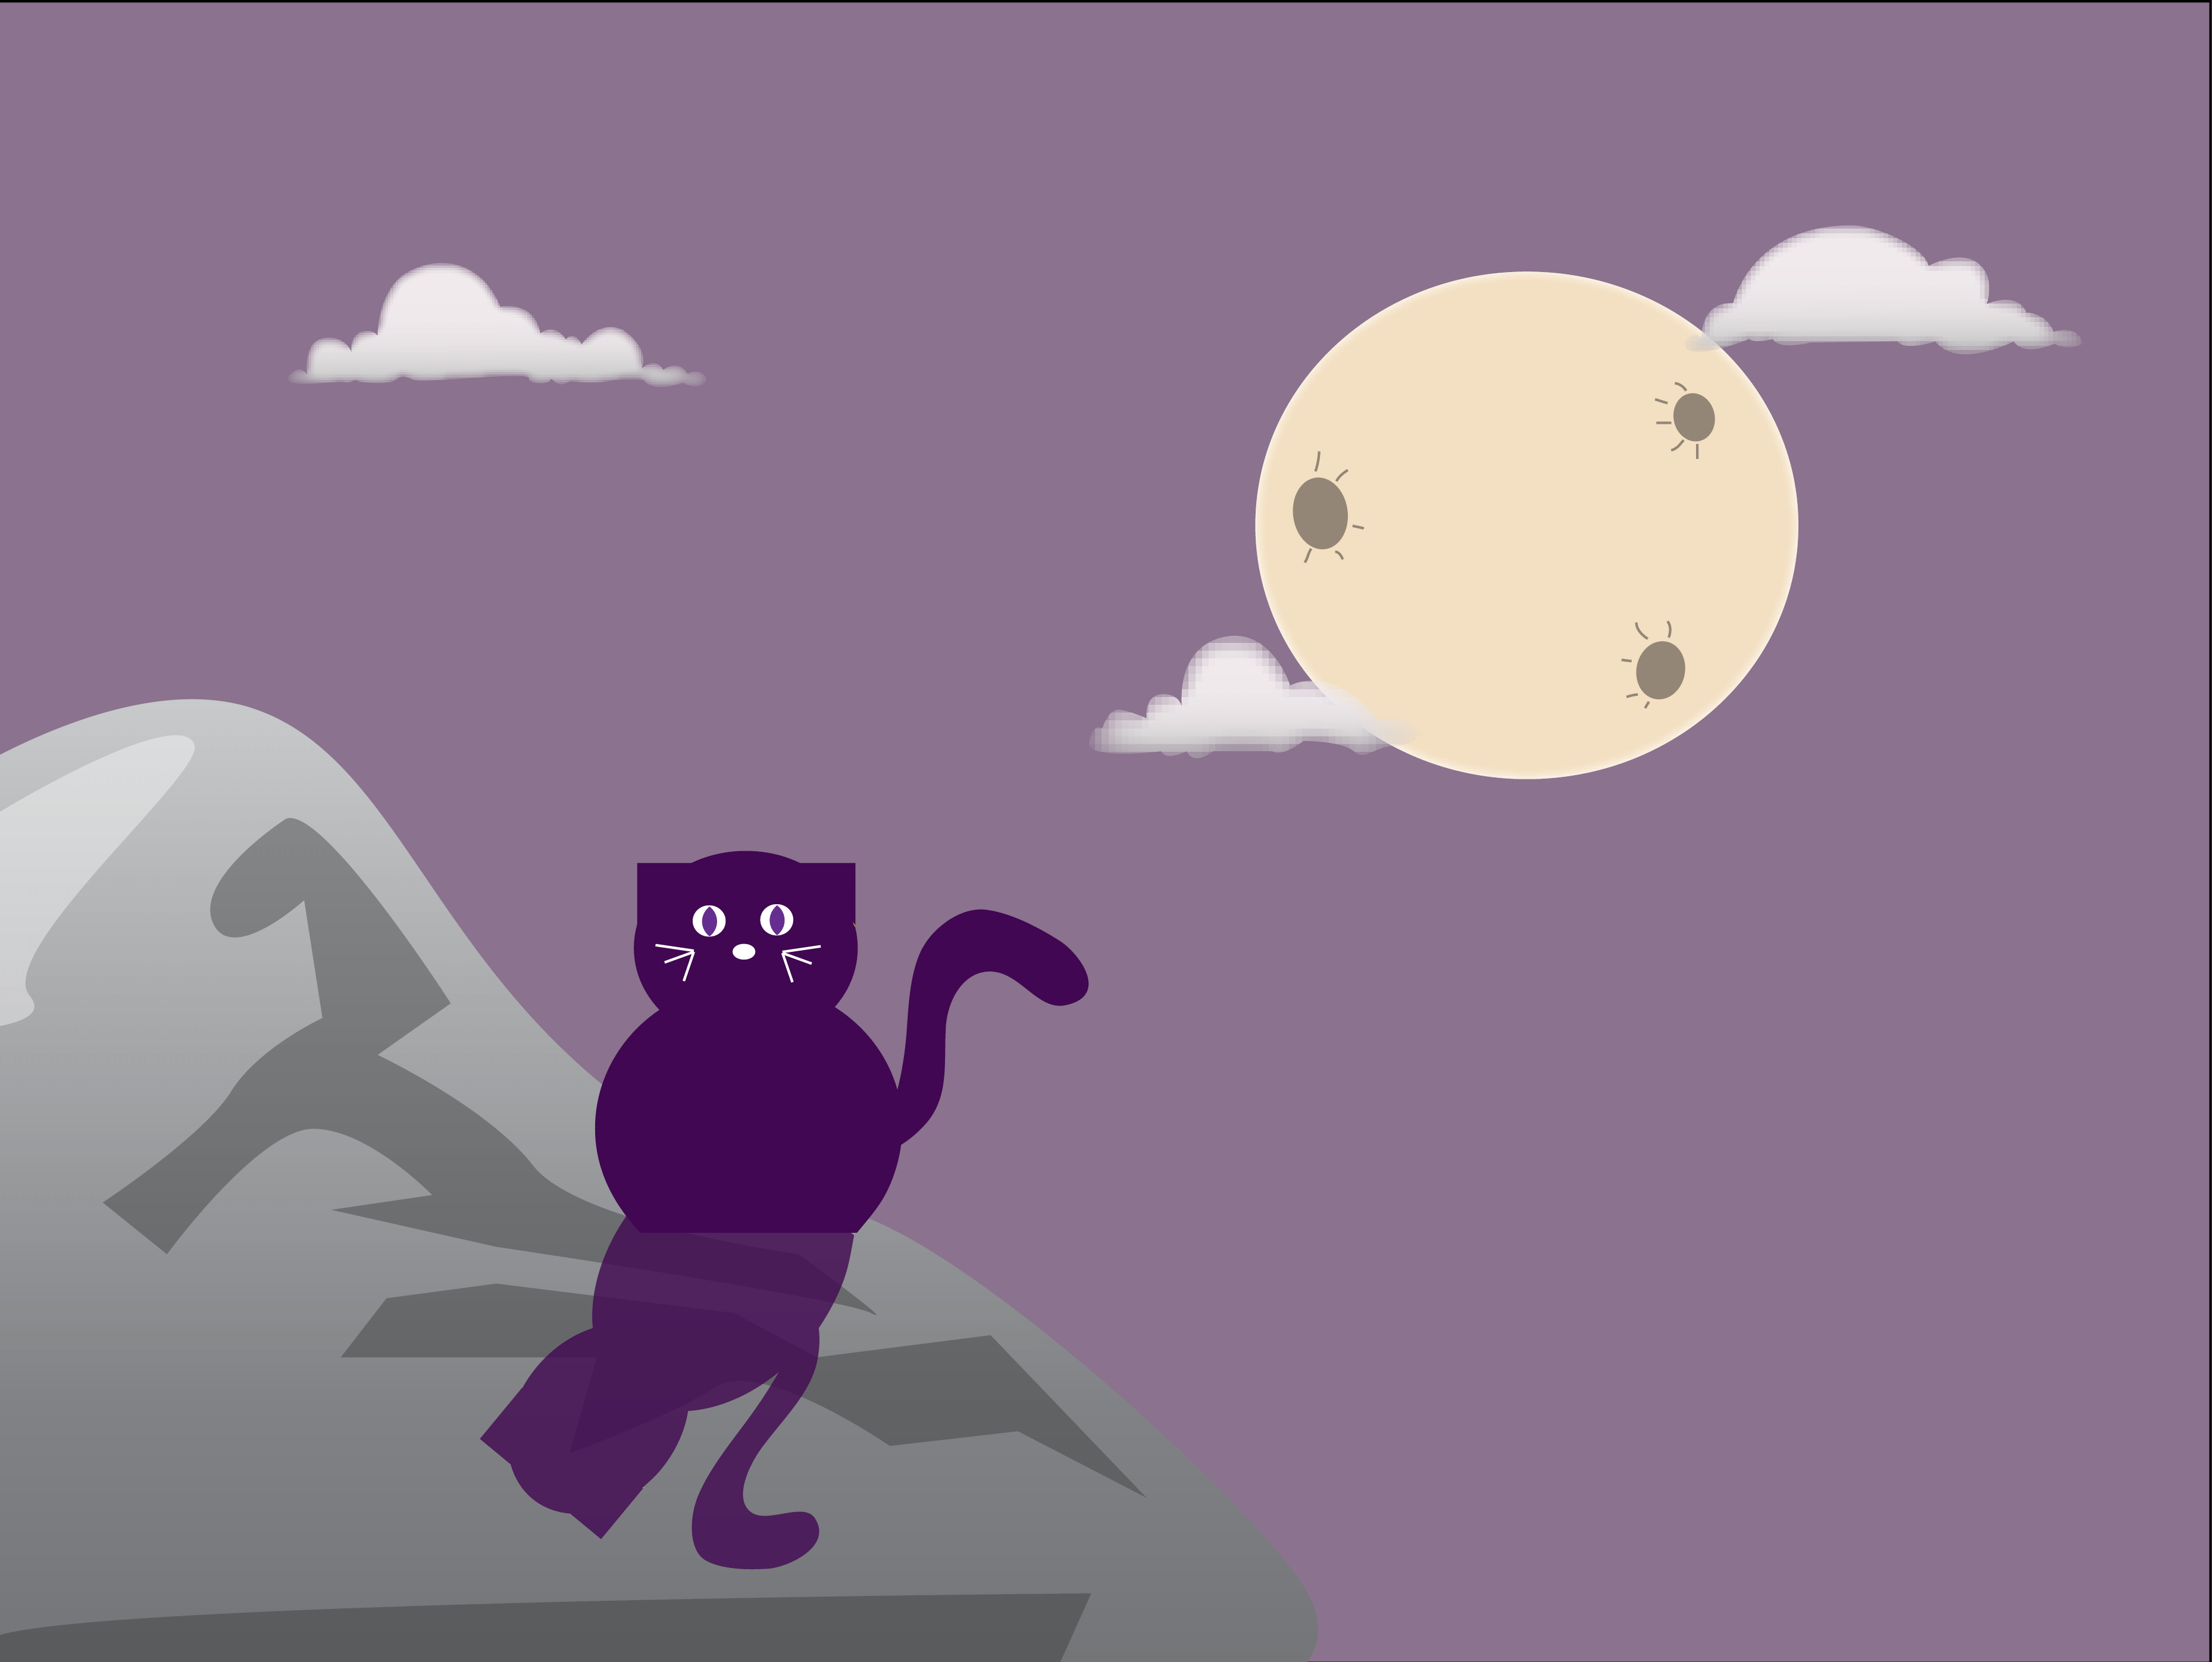 Illustration of a cat sitting under the moon